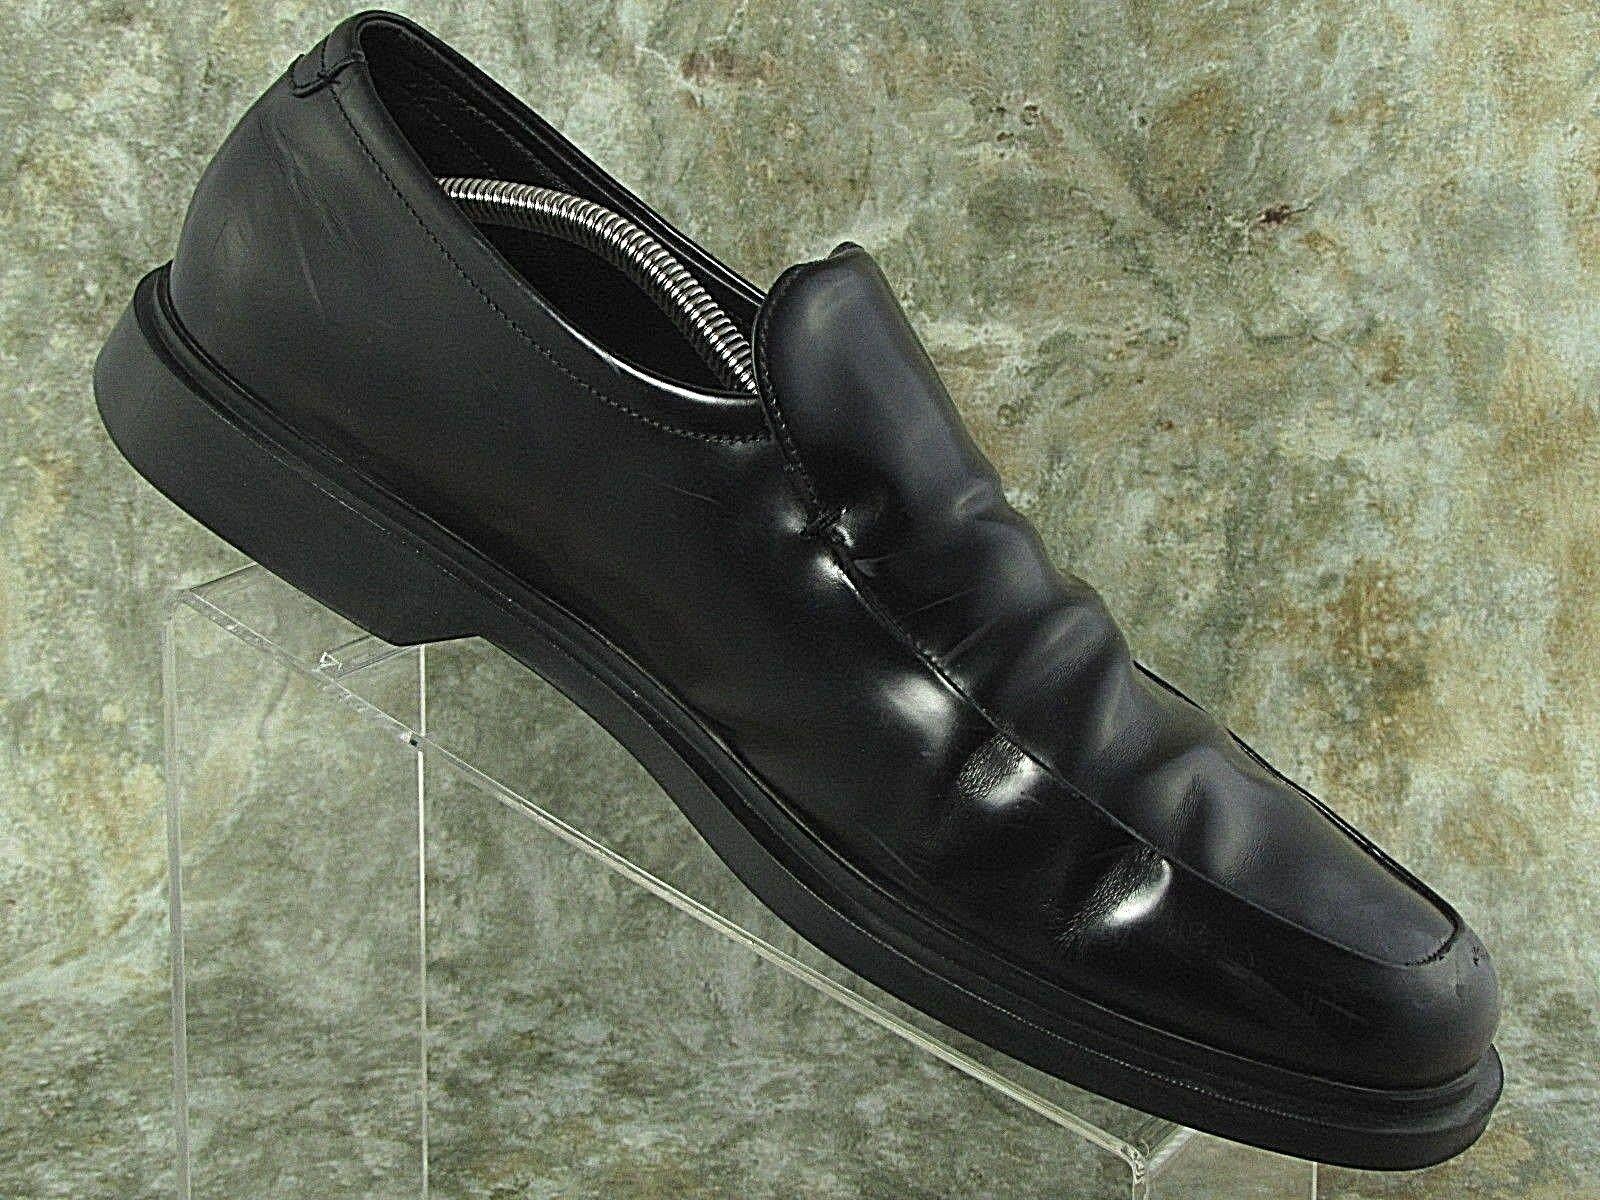 Prada Mens Leather Shoes Black Loafer Slip On Dress Formal Made in Italy